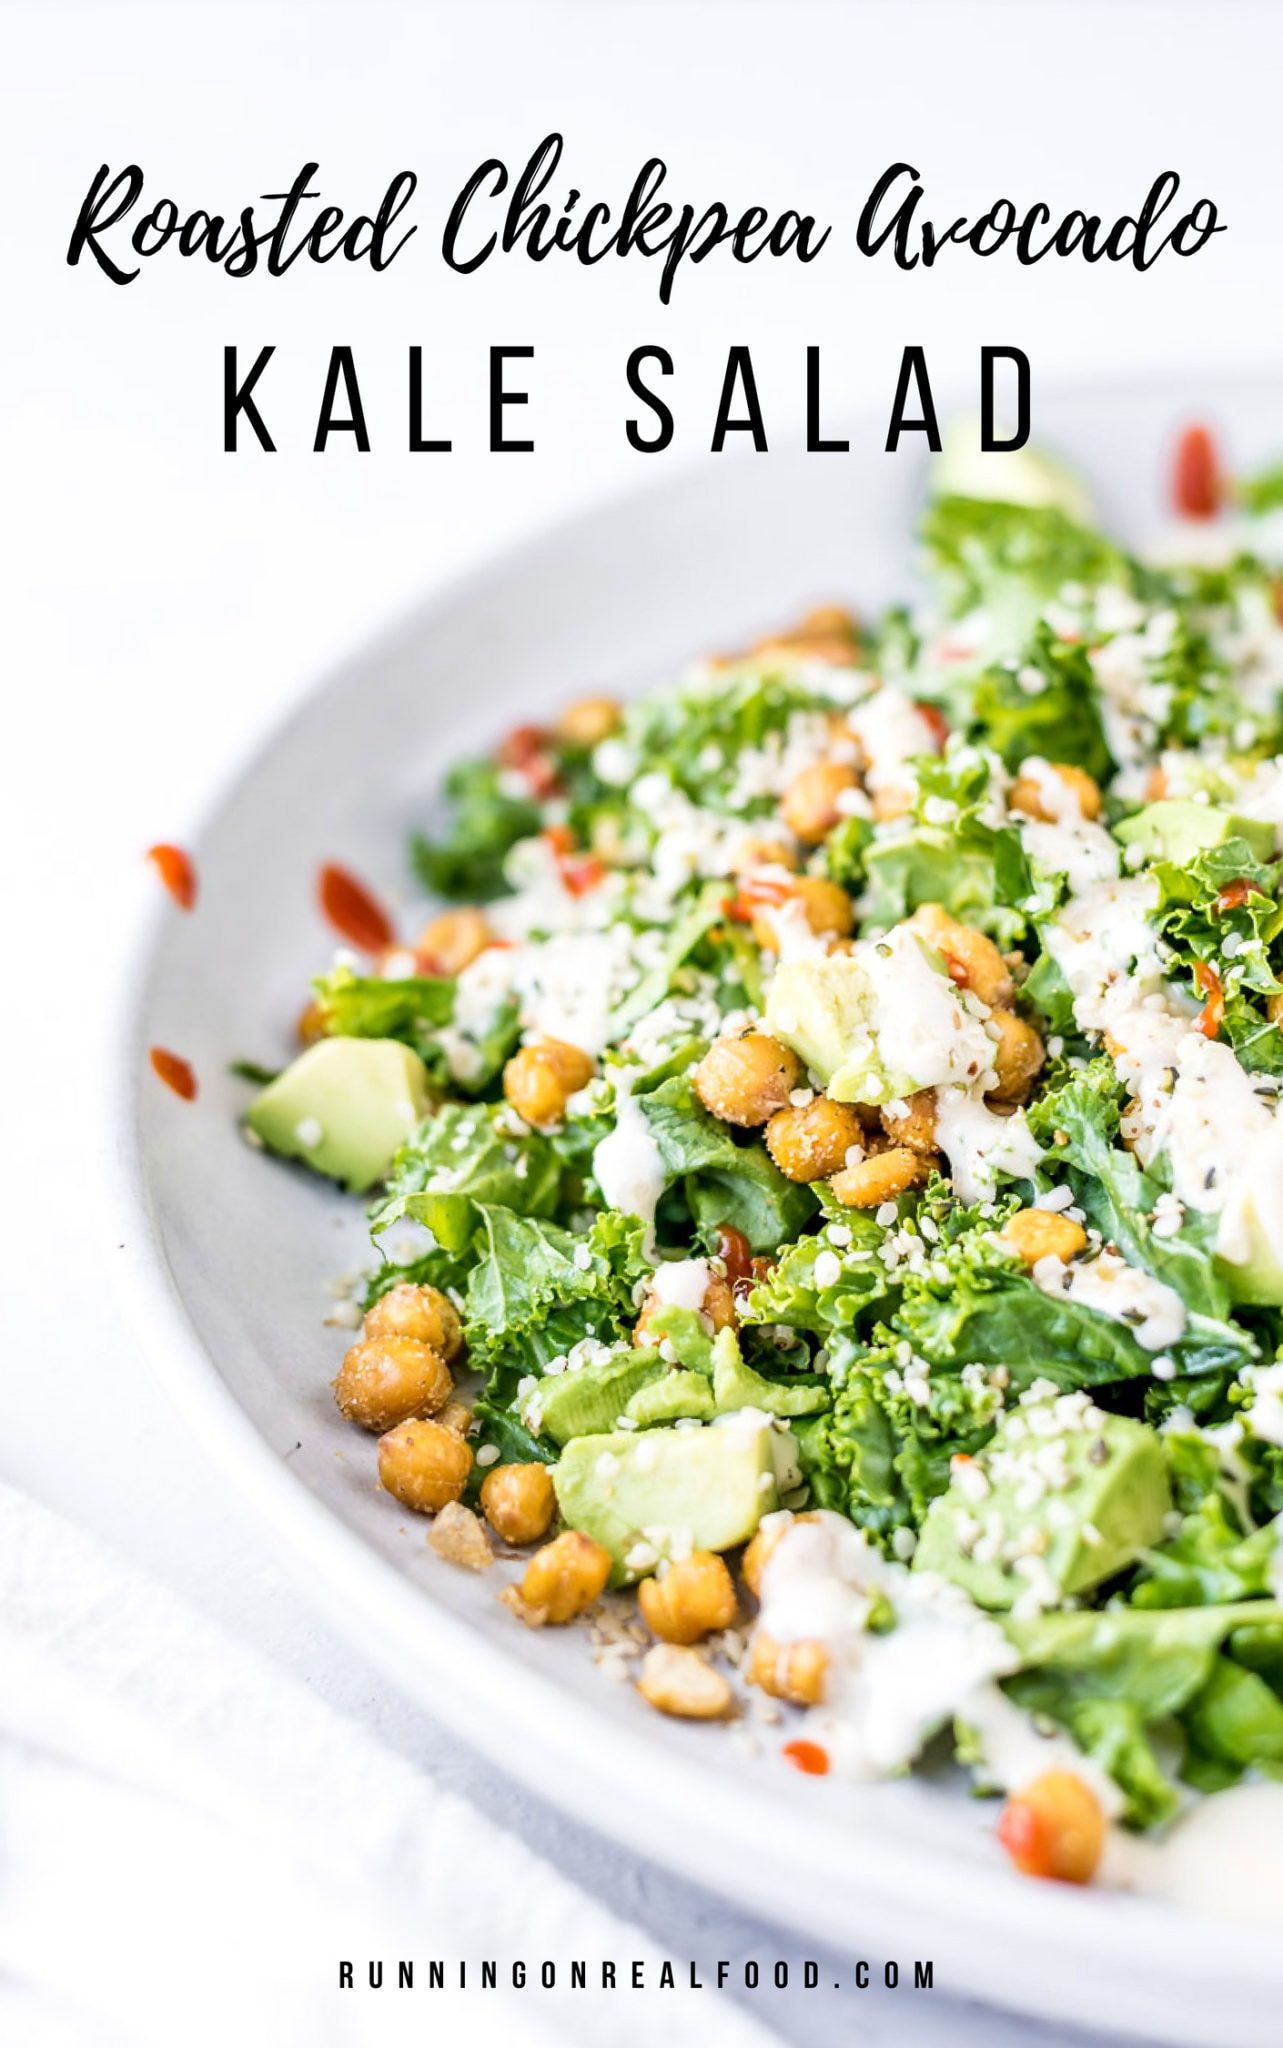 Try this vegan kale salad with avocado, roasted chickpeas, hemp seeds and creamy tahini lime dressing for a simple, healthy plant-based meal. Easy to make with simple ingredients, gluten-free.#vegan #vegansalad #saladrecipes #avocado #kalesalad #roastedchickpeas #chickpeas #tahini #healthyrecipes #food #recipes #healthy #veganmealideas #easyrecipes #kale #tahinisauce #hempseeds